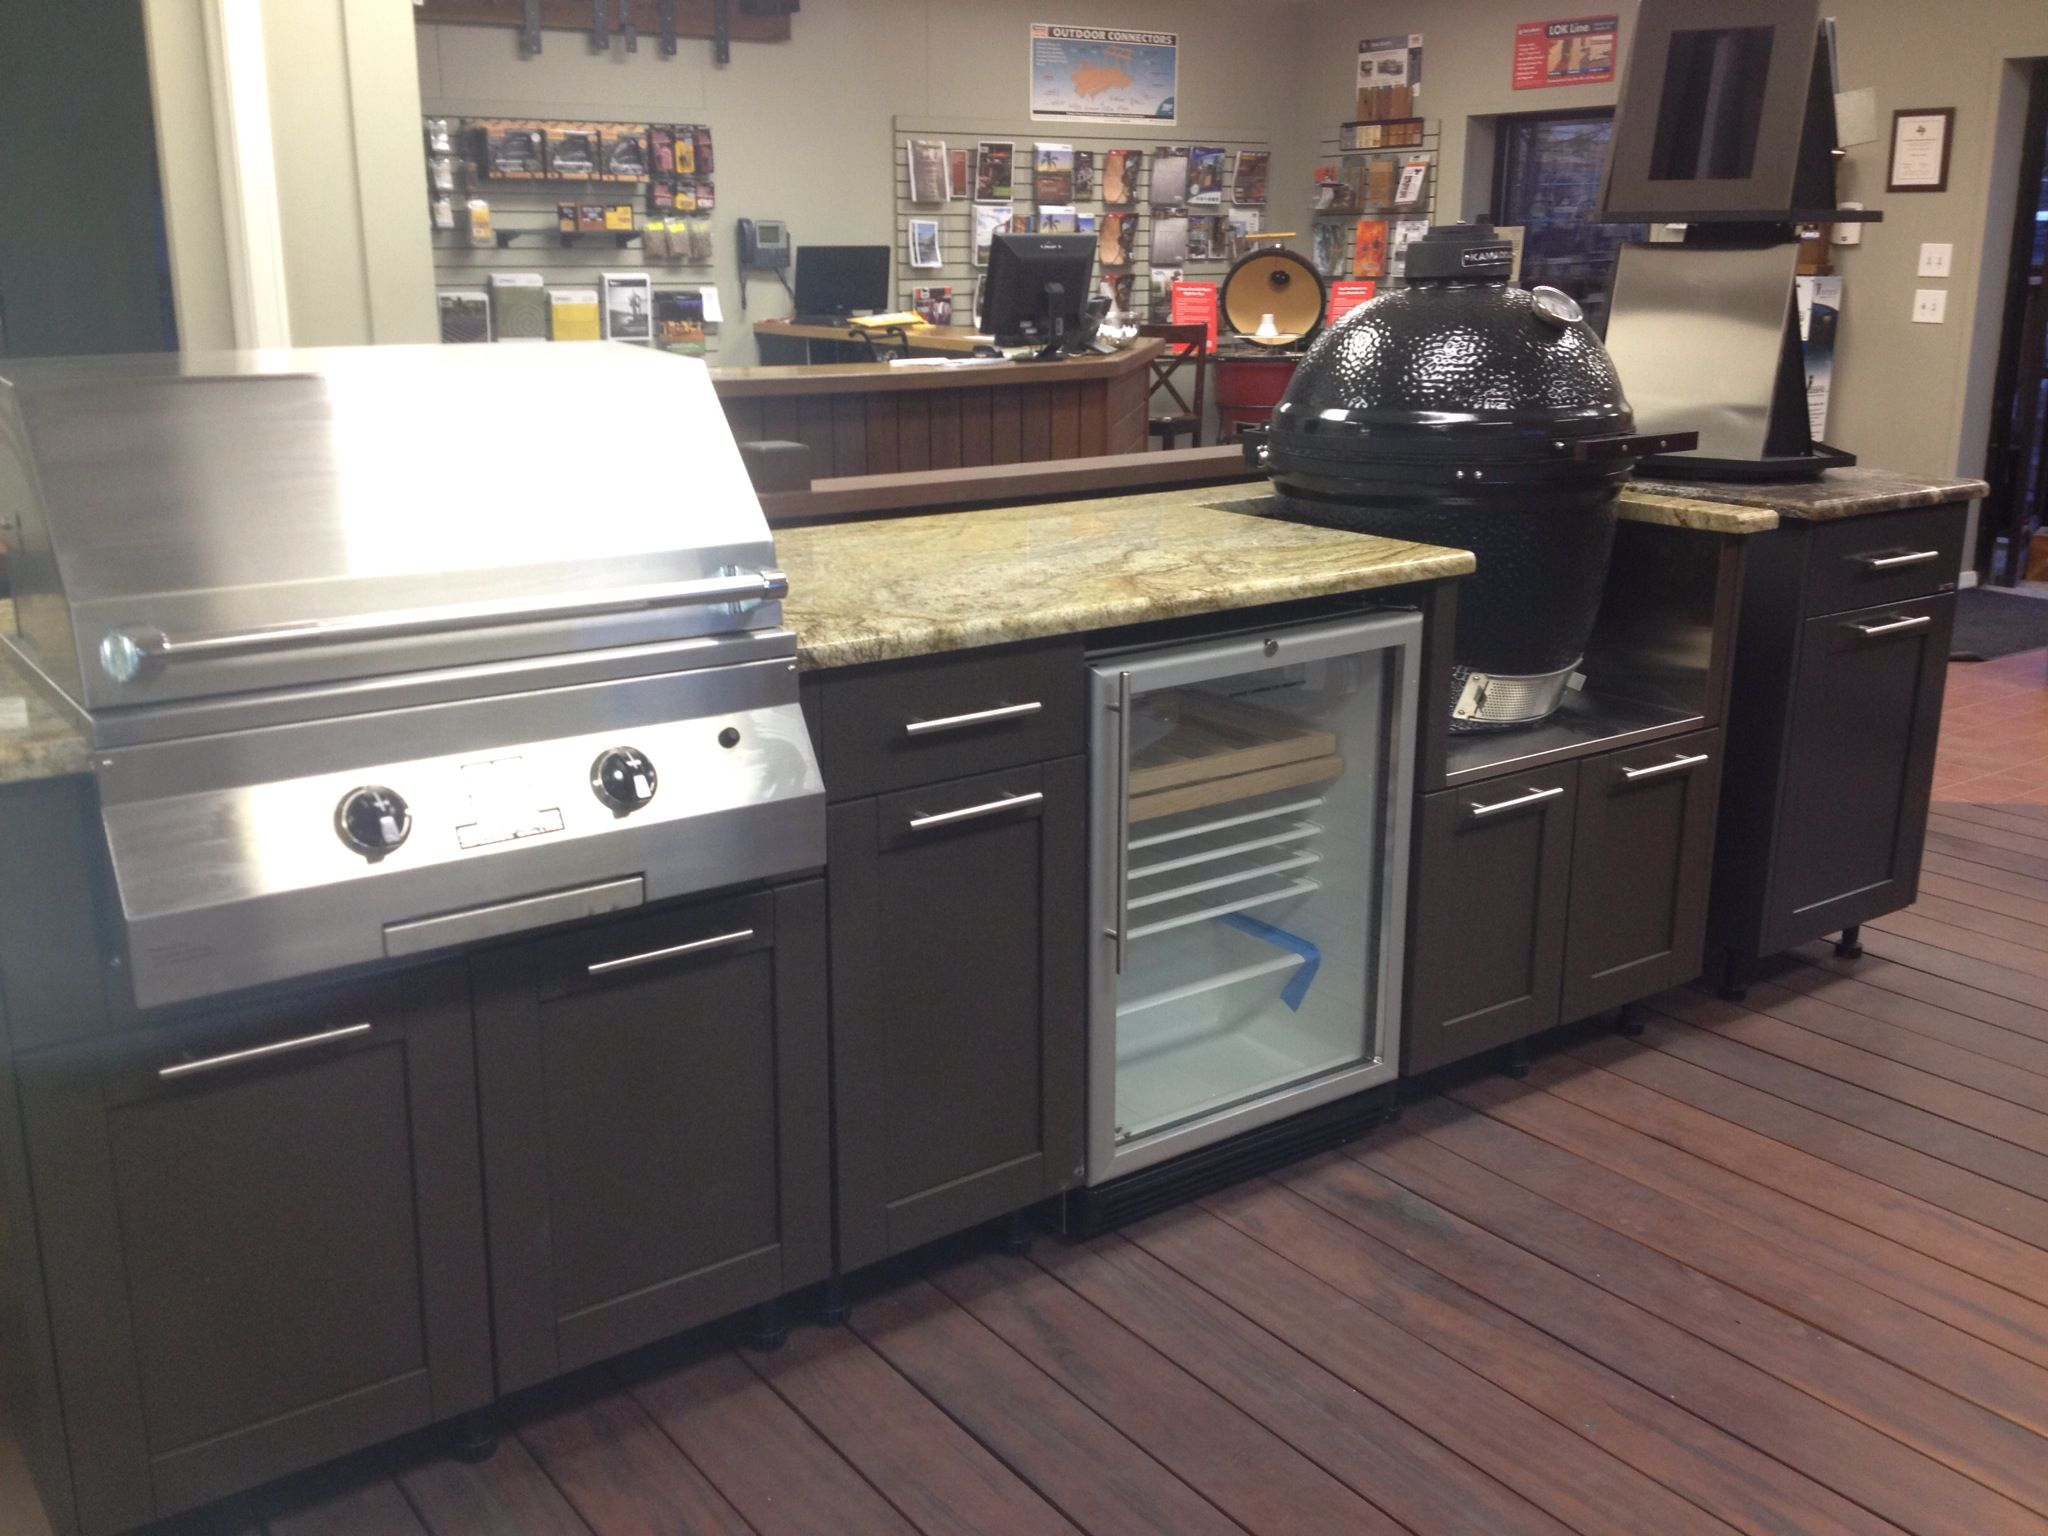 grills outdoor cabinets kitchens outdoor kitchen cabinets Design your own outdoor kitchen using Danver Stainless Cabinets add a Kamado